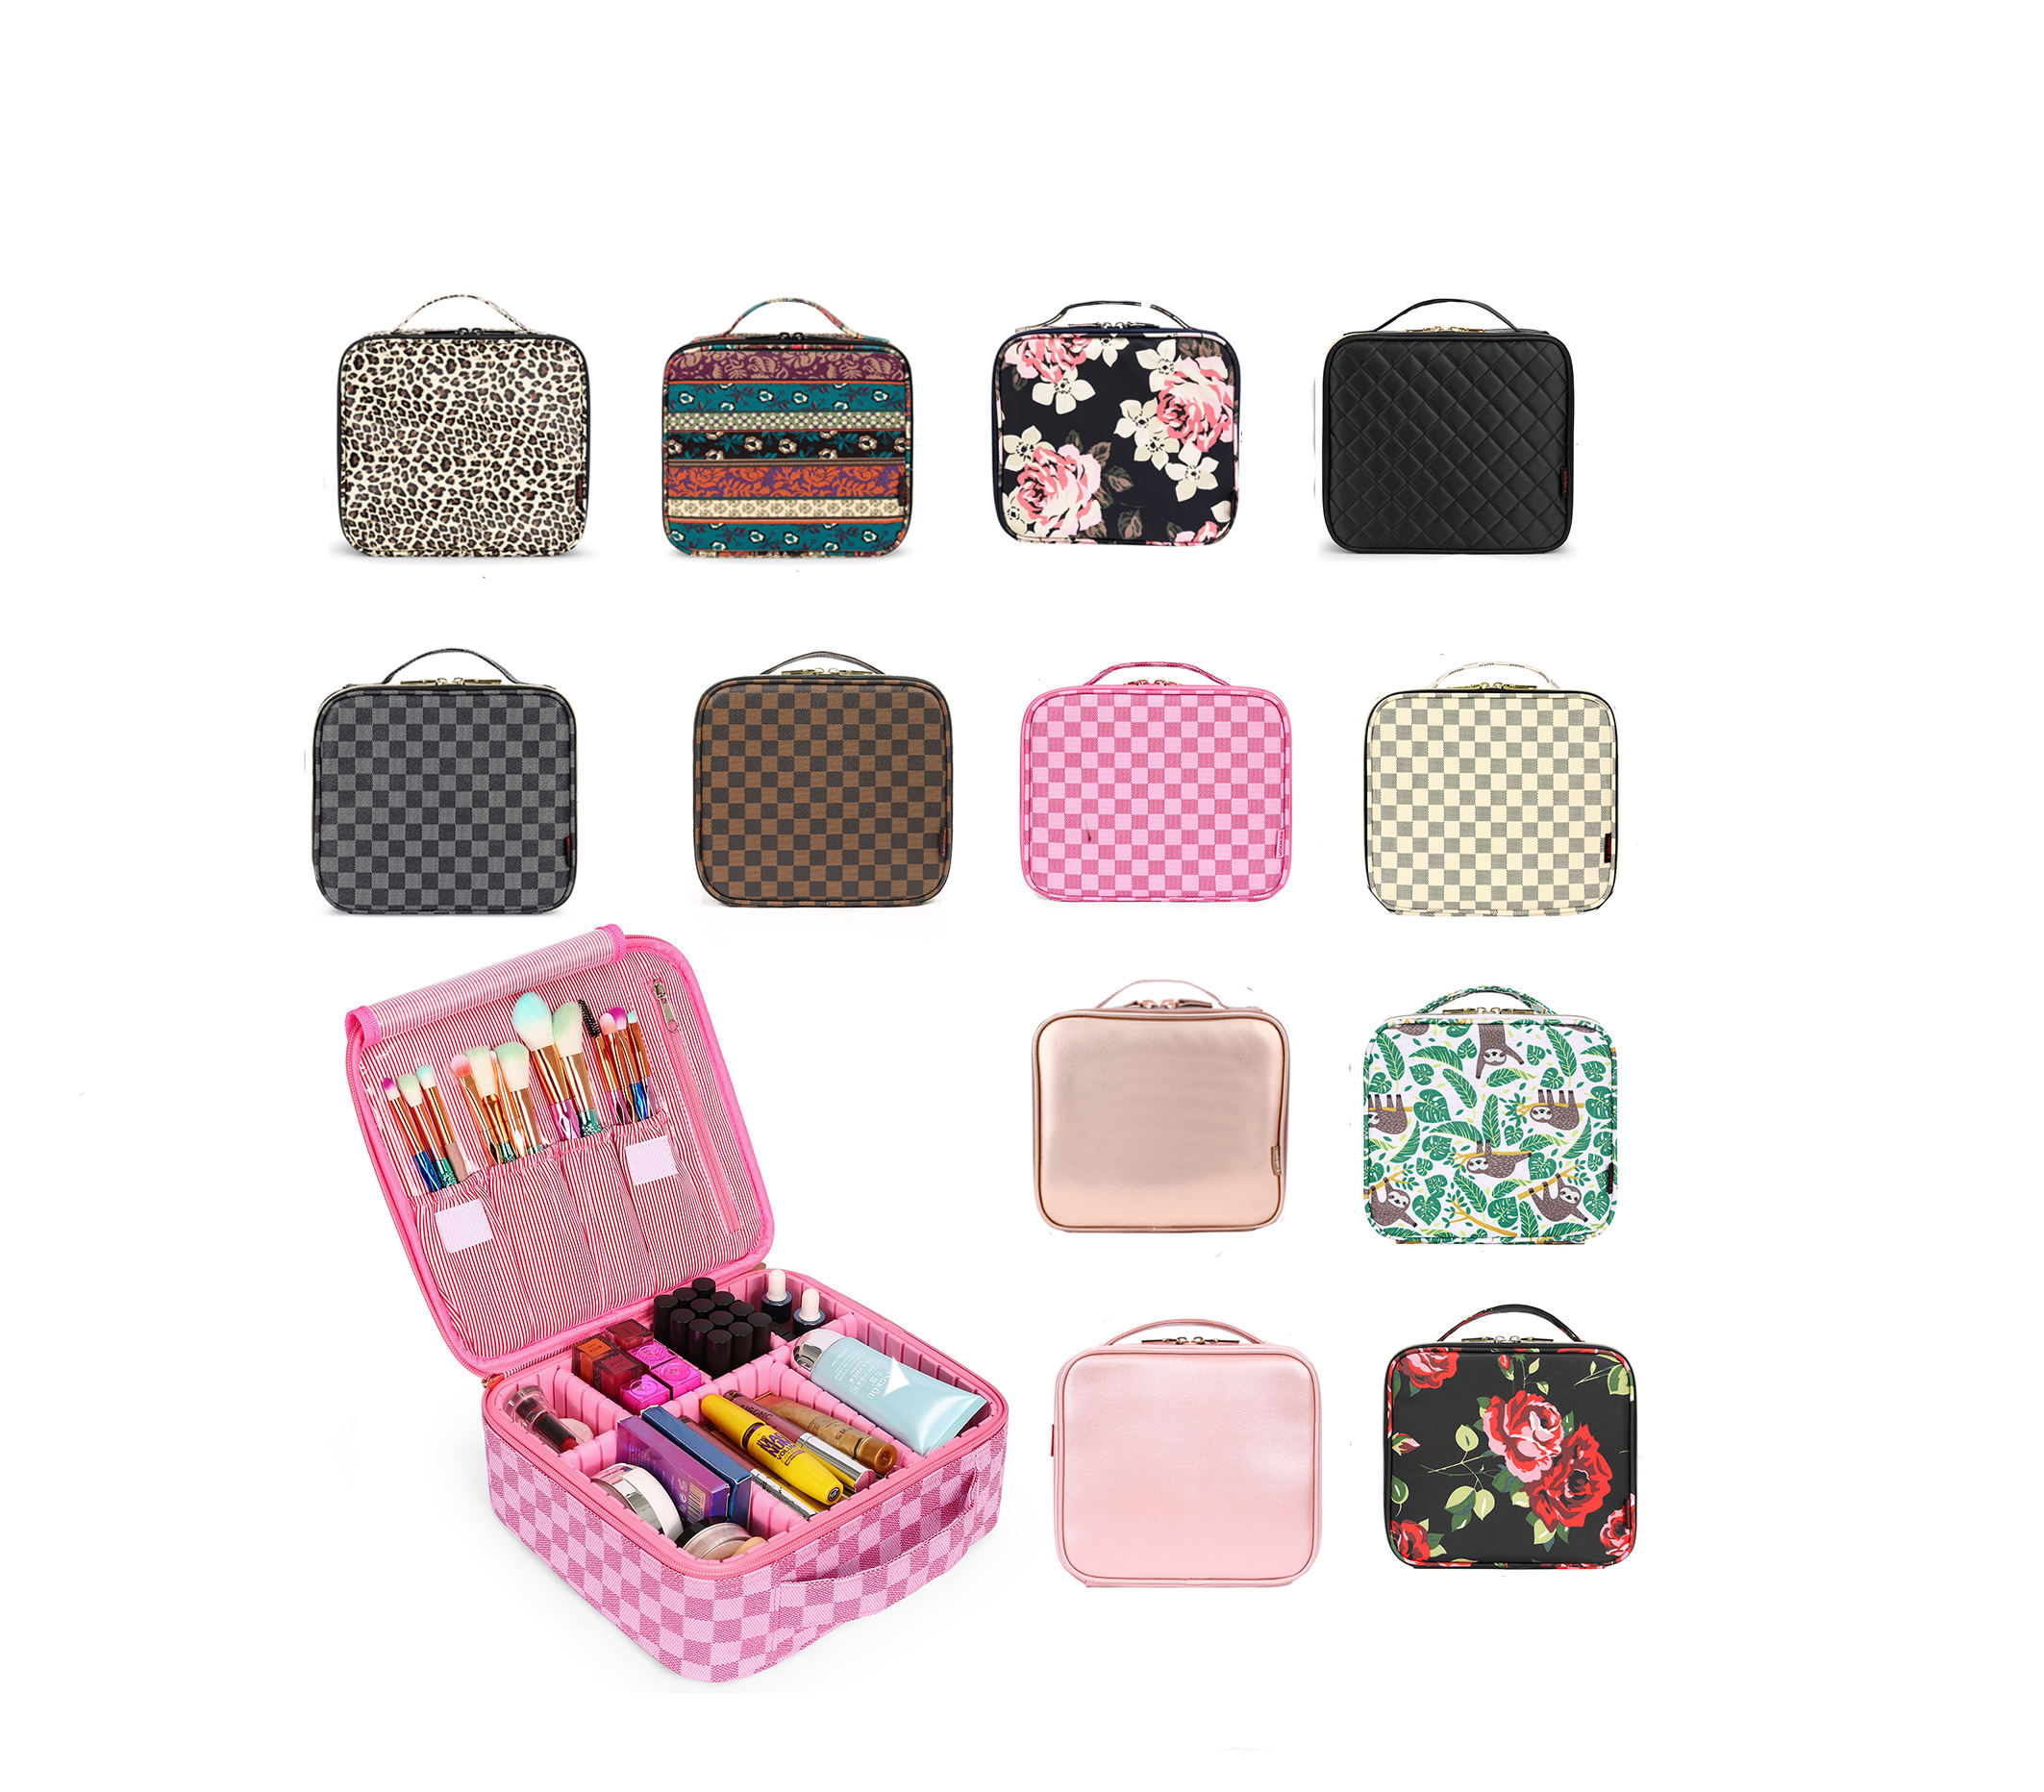 IN STOCK FREE SAMPLE Accept Custom LOGO Large Capacity Beauty Makeup Bag Travel Cosmetic Bag Case for Women PU Cute Makeup Case